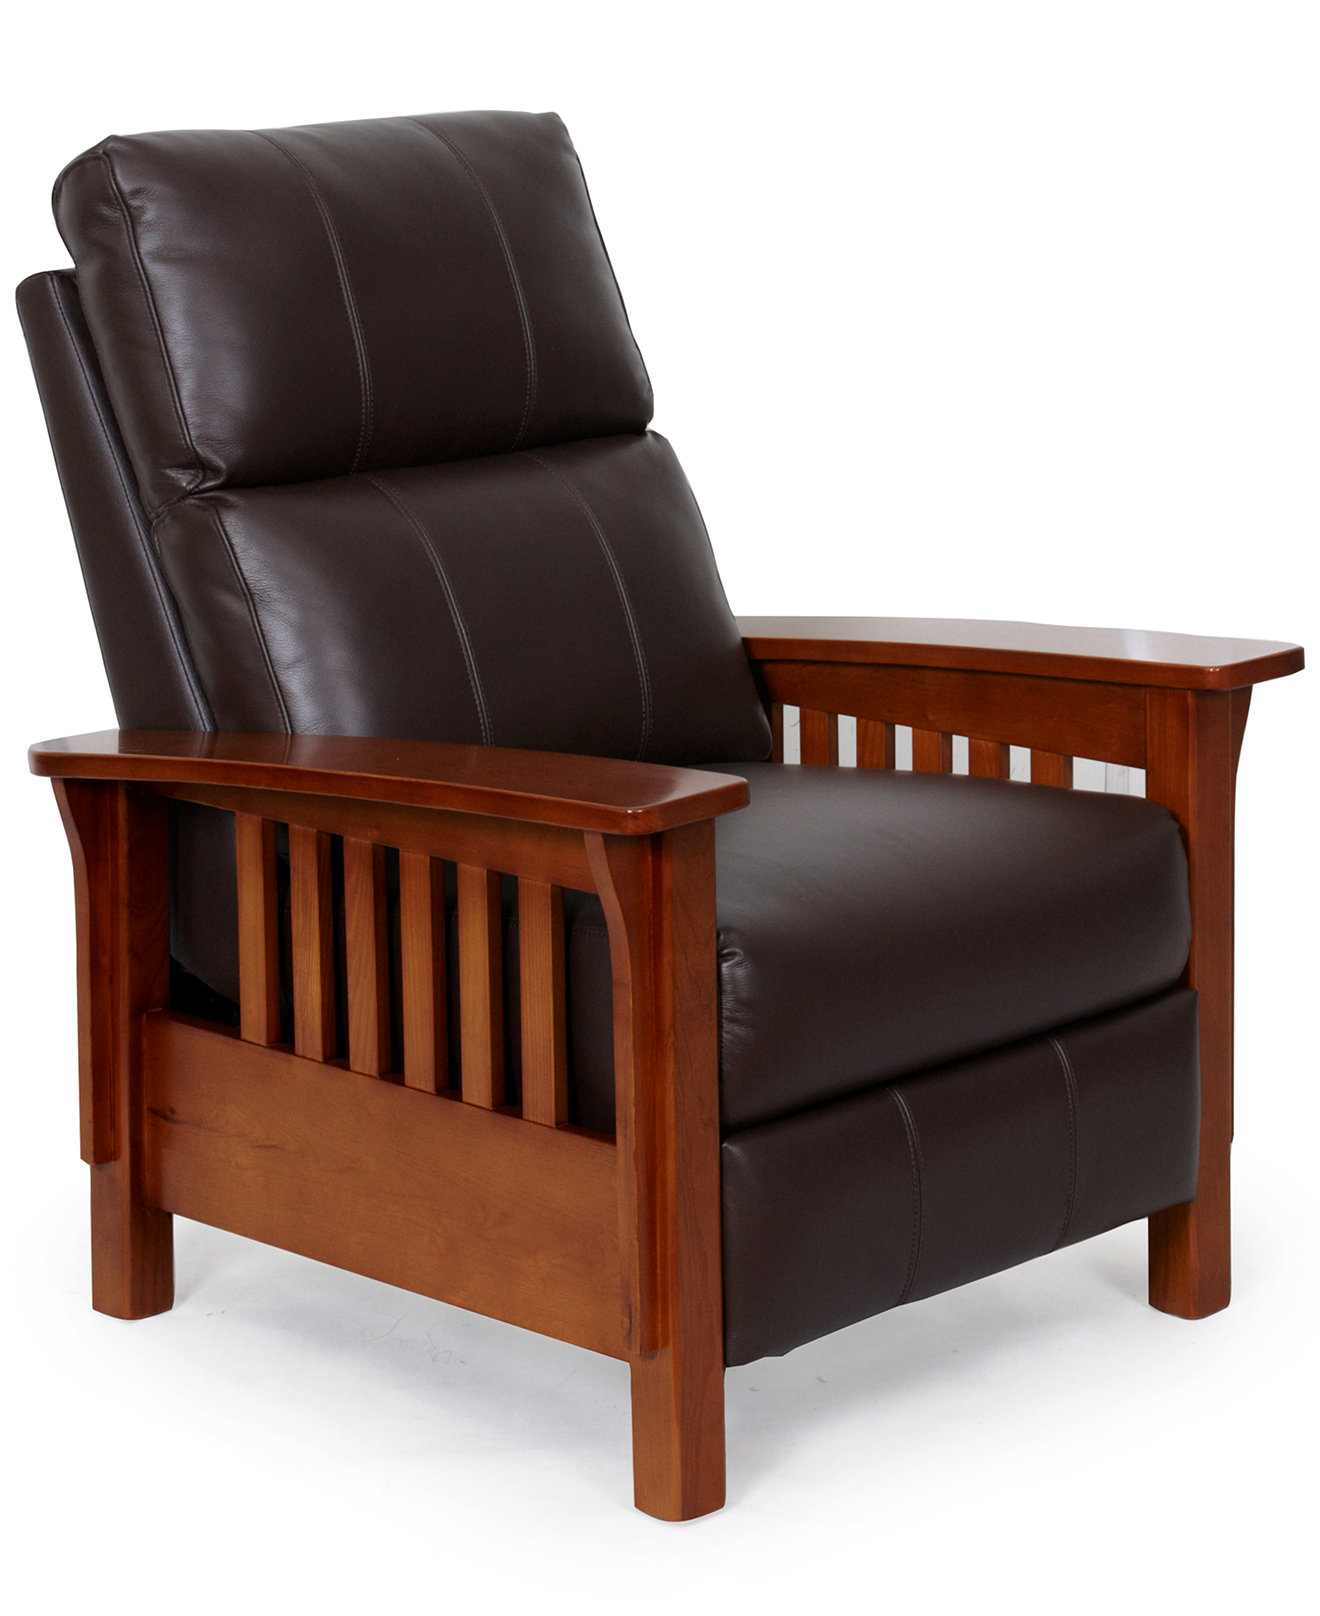 Reviewing The Best High End Recliners